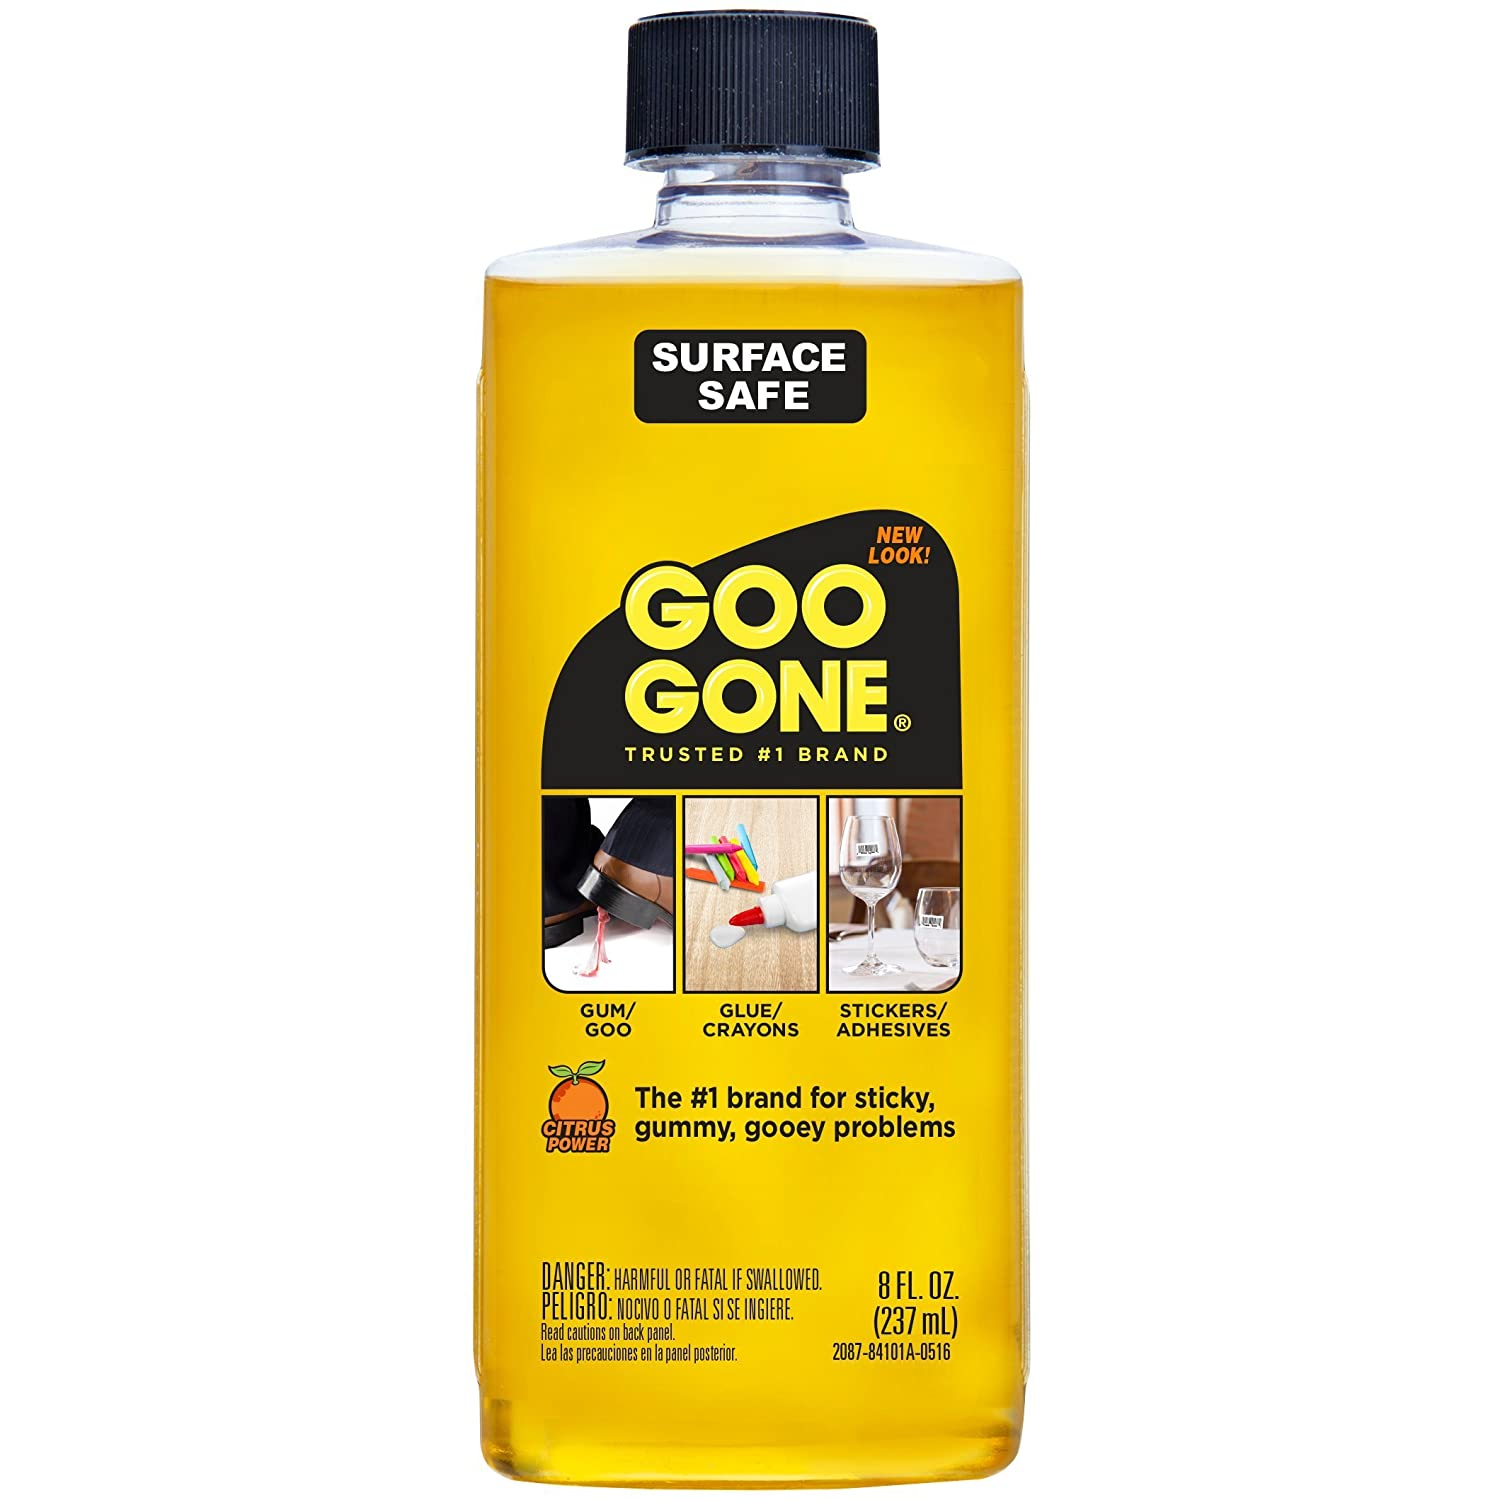 Amazoncom Goo Gone Surface Safe Adhesive Remover  Oz Home - Custom vinyl decal application fluid recipe